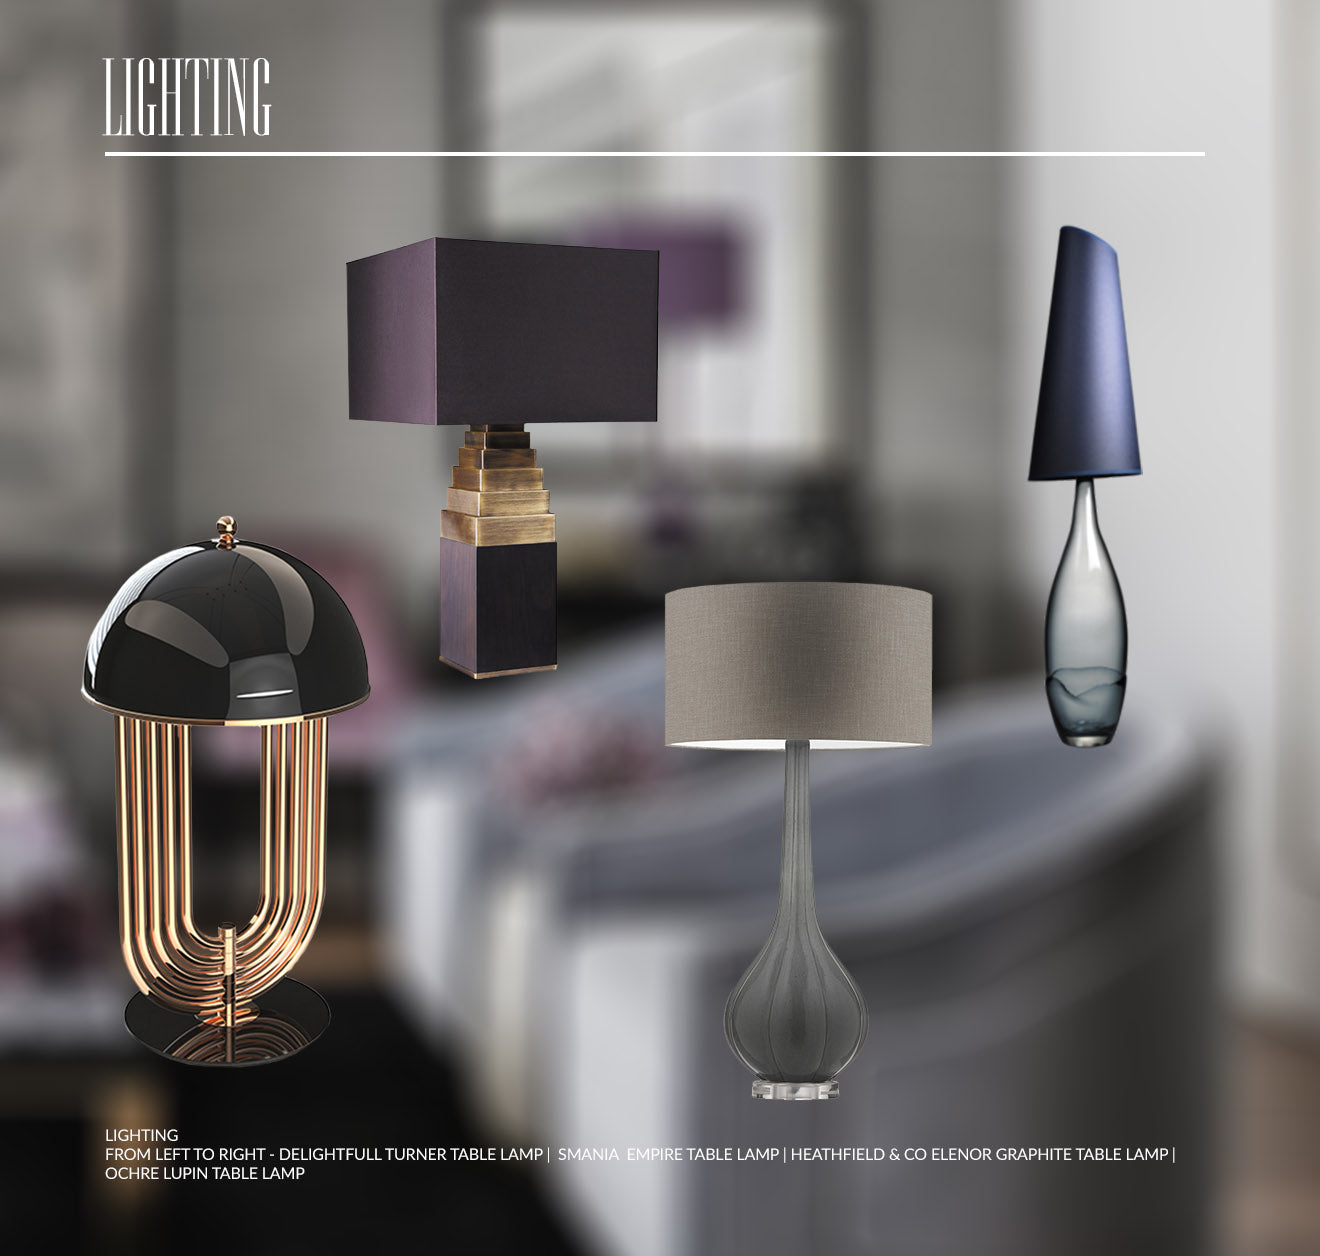 Modern Art Deco Table Lamp and Lighting Inspiration. Luxury Modern Art Deco Lighting Style